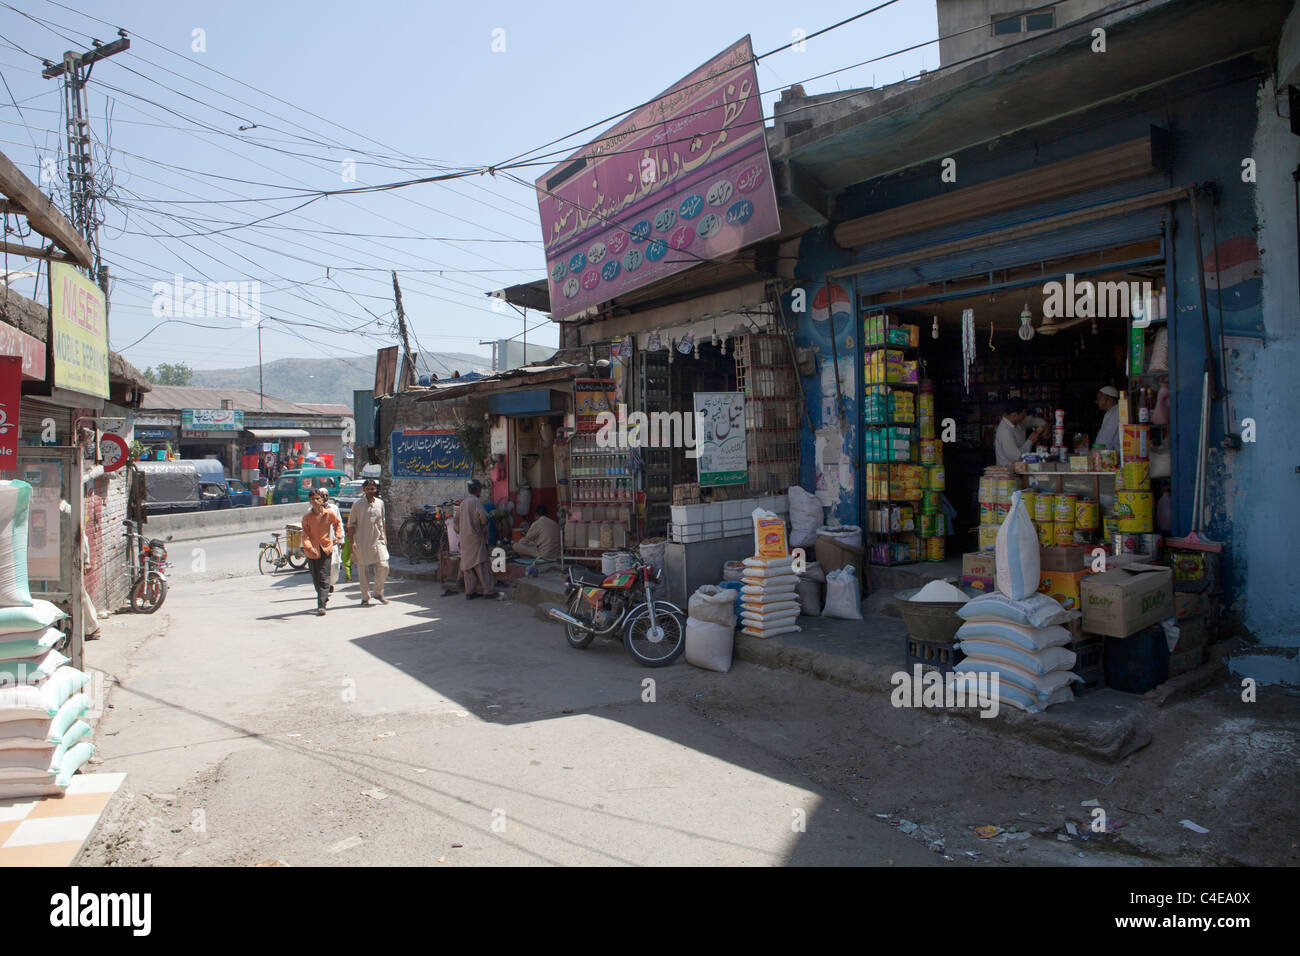 area in Abbottabad, pakistan where bin laden was killed - Stock Image